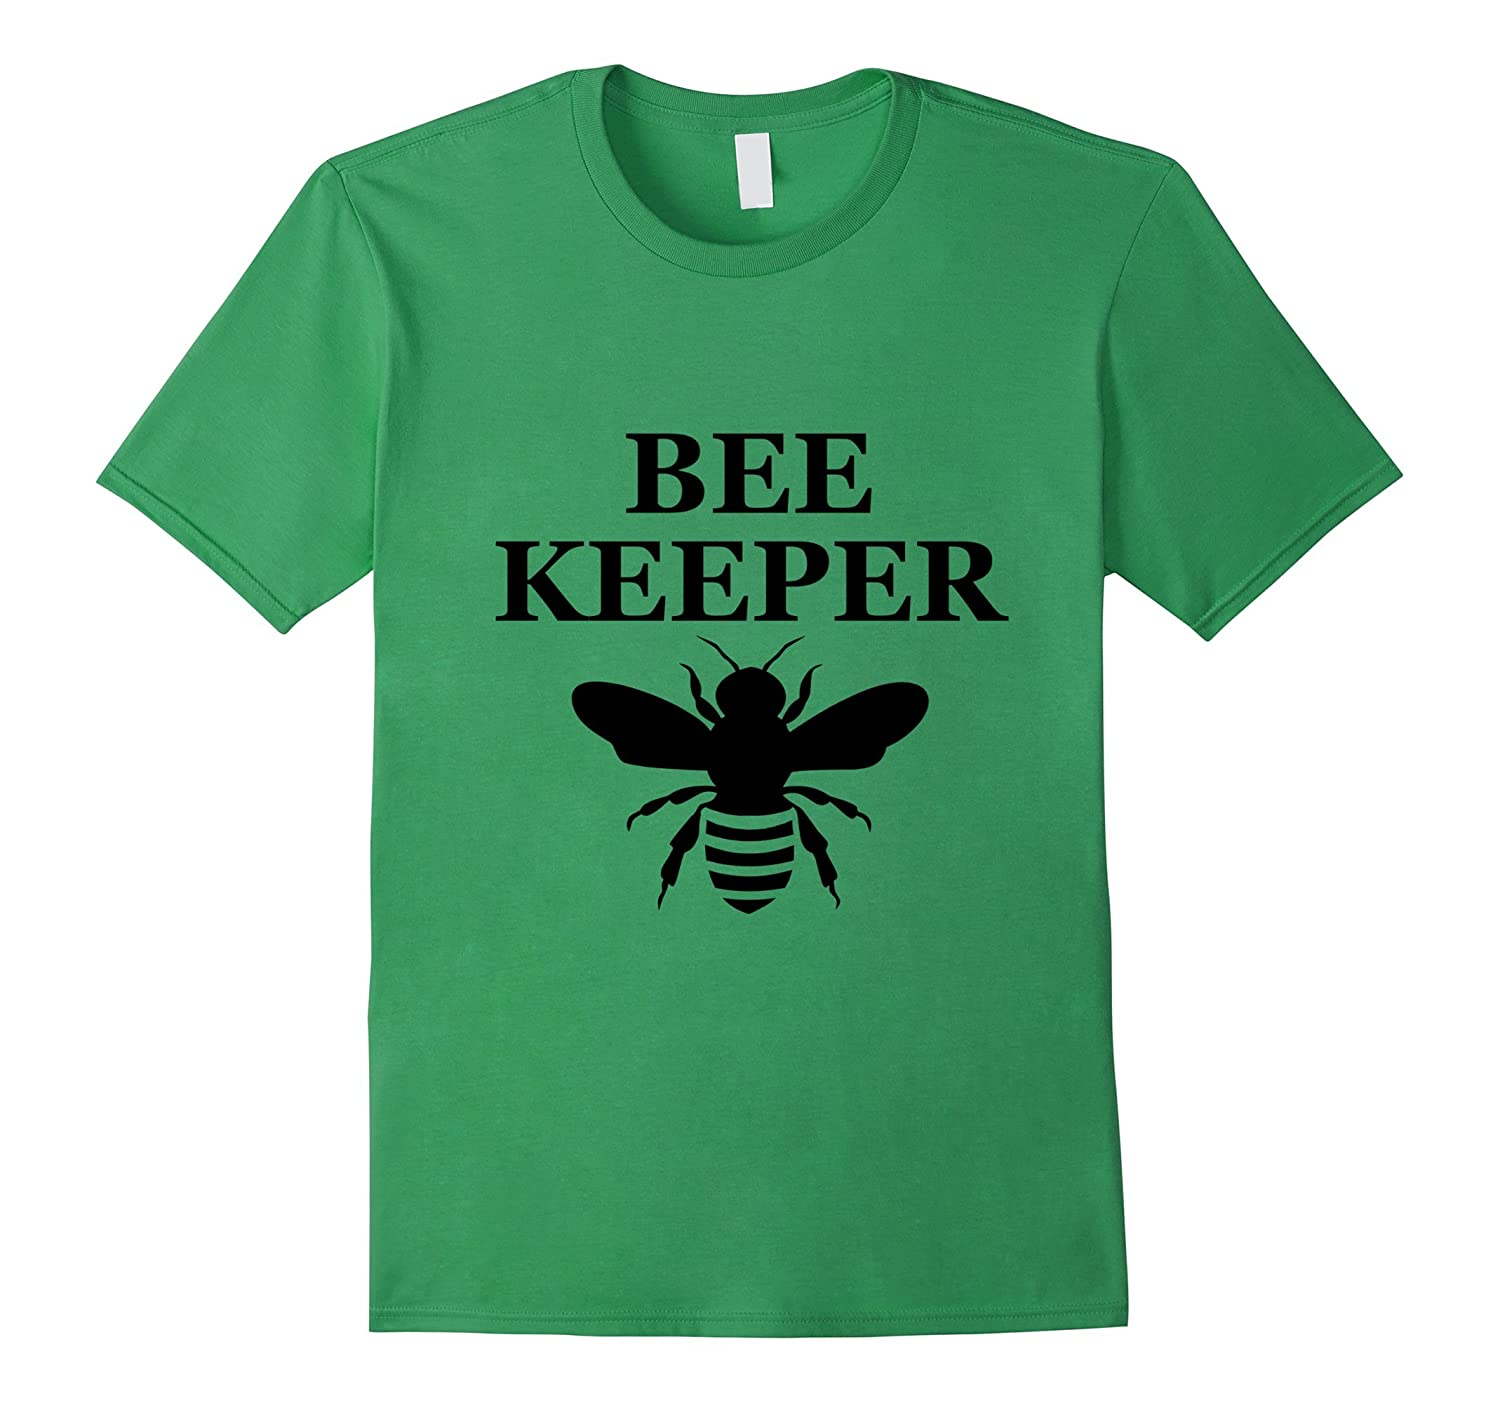 Beekeeper T-Shirt Beekeeping Shirt Bee Keeper Tee-Art